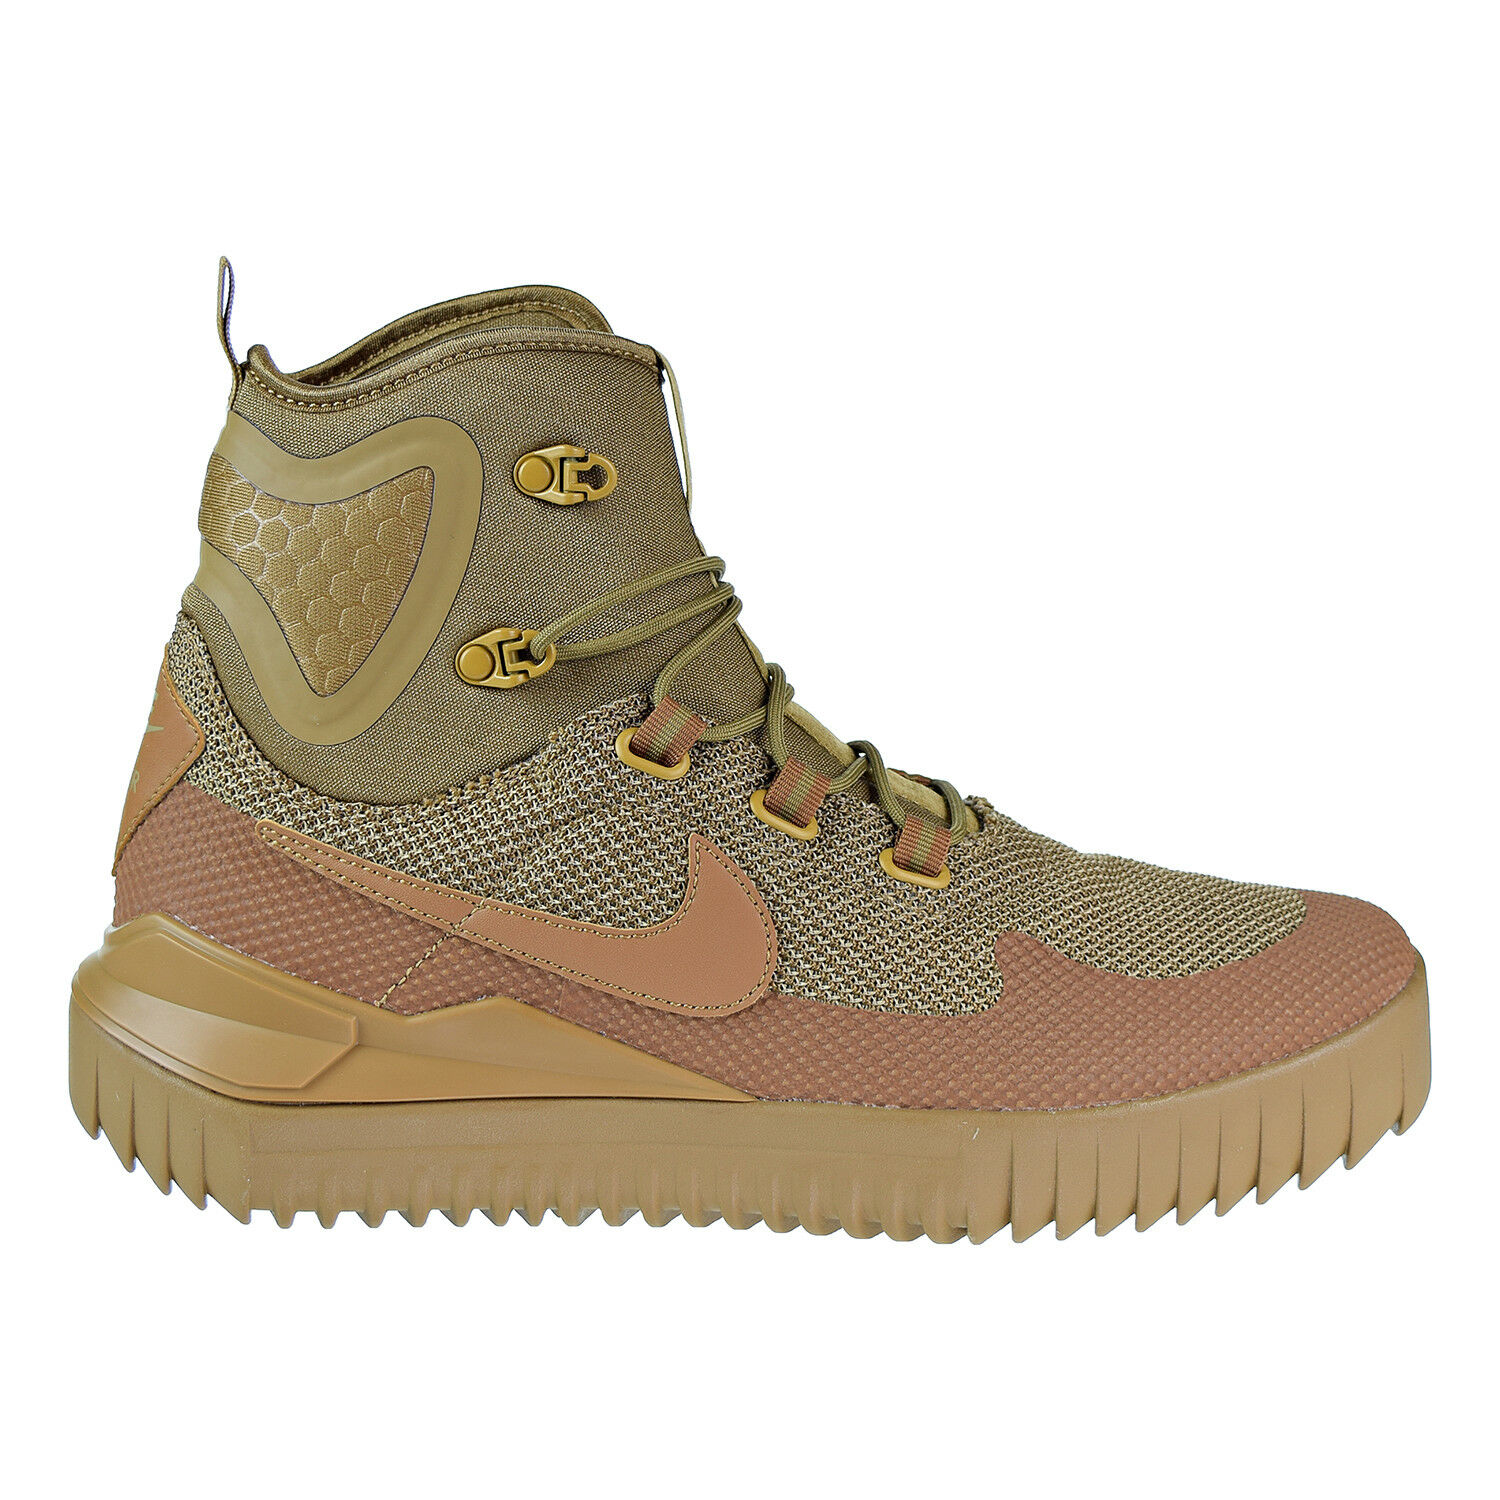 Nike Air Wild Mid Men's shoes golden Beige Ale Brown 916819-200